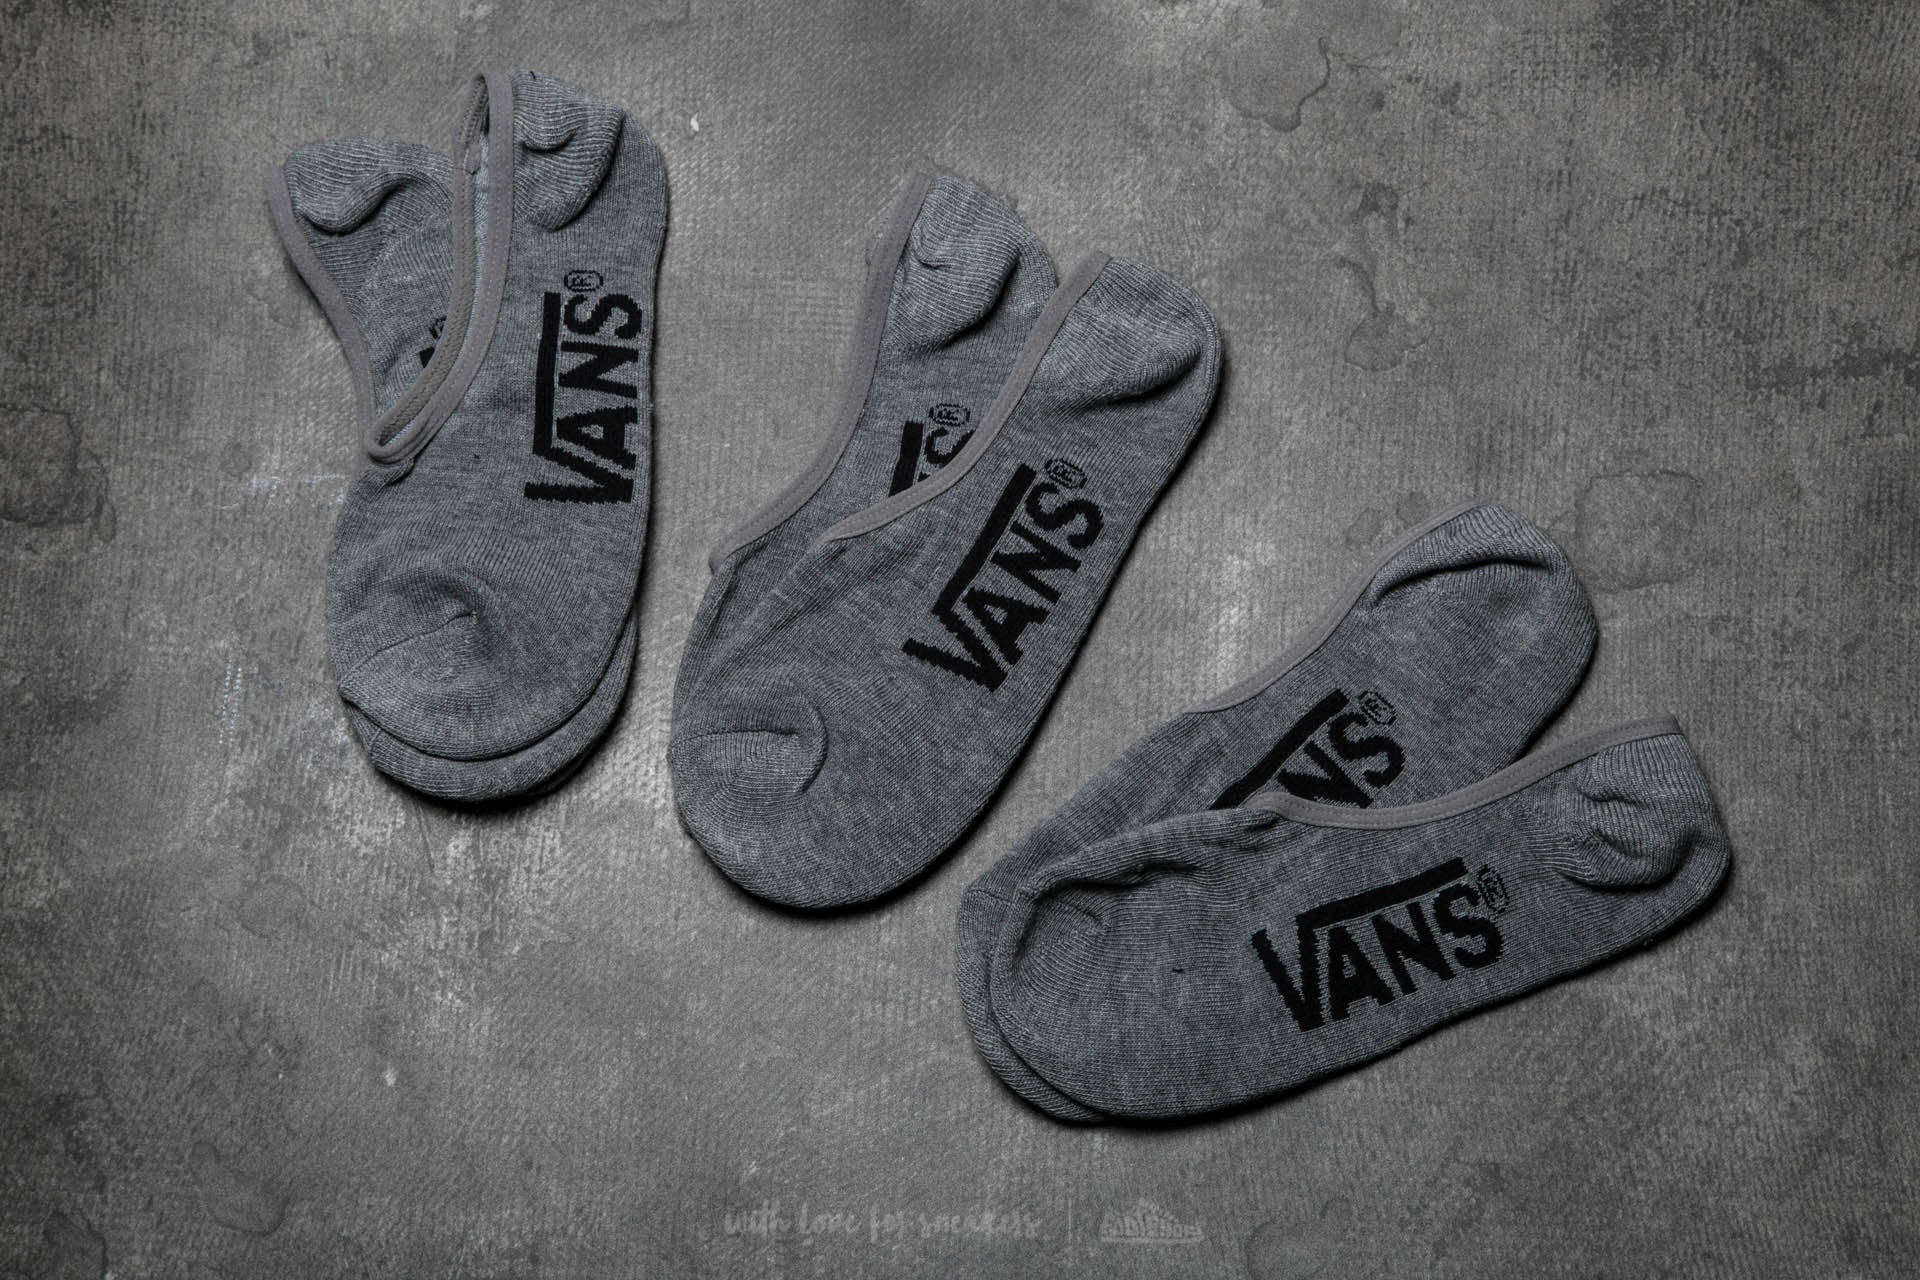 Vans Classic Super No S Heather Grey 3 Pairs Socks